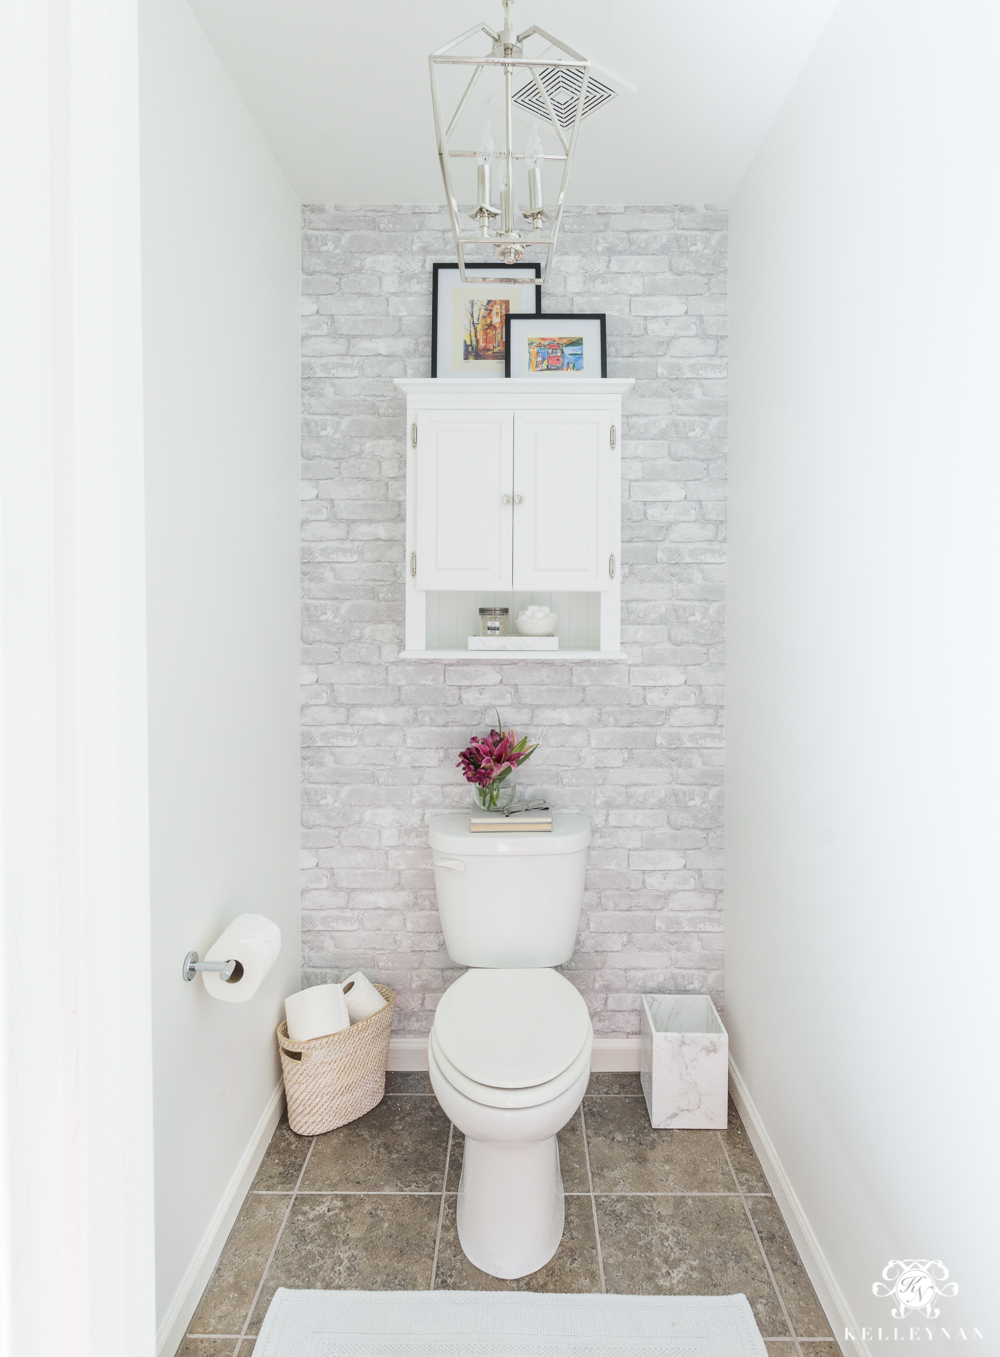 Toilet Room Makeover Reveal - Before and After with clever storage solutions